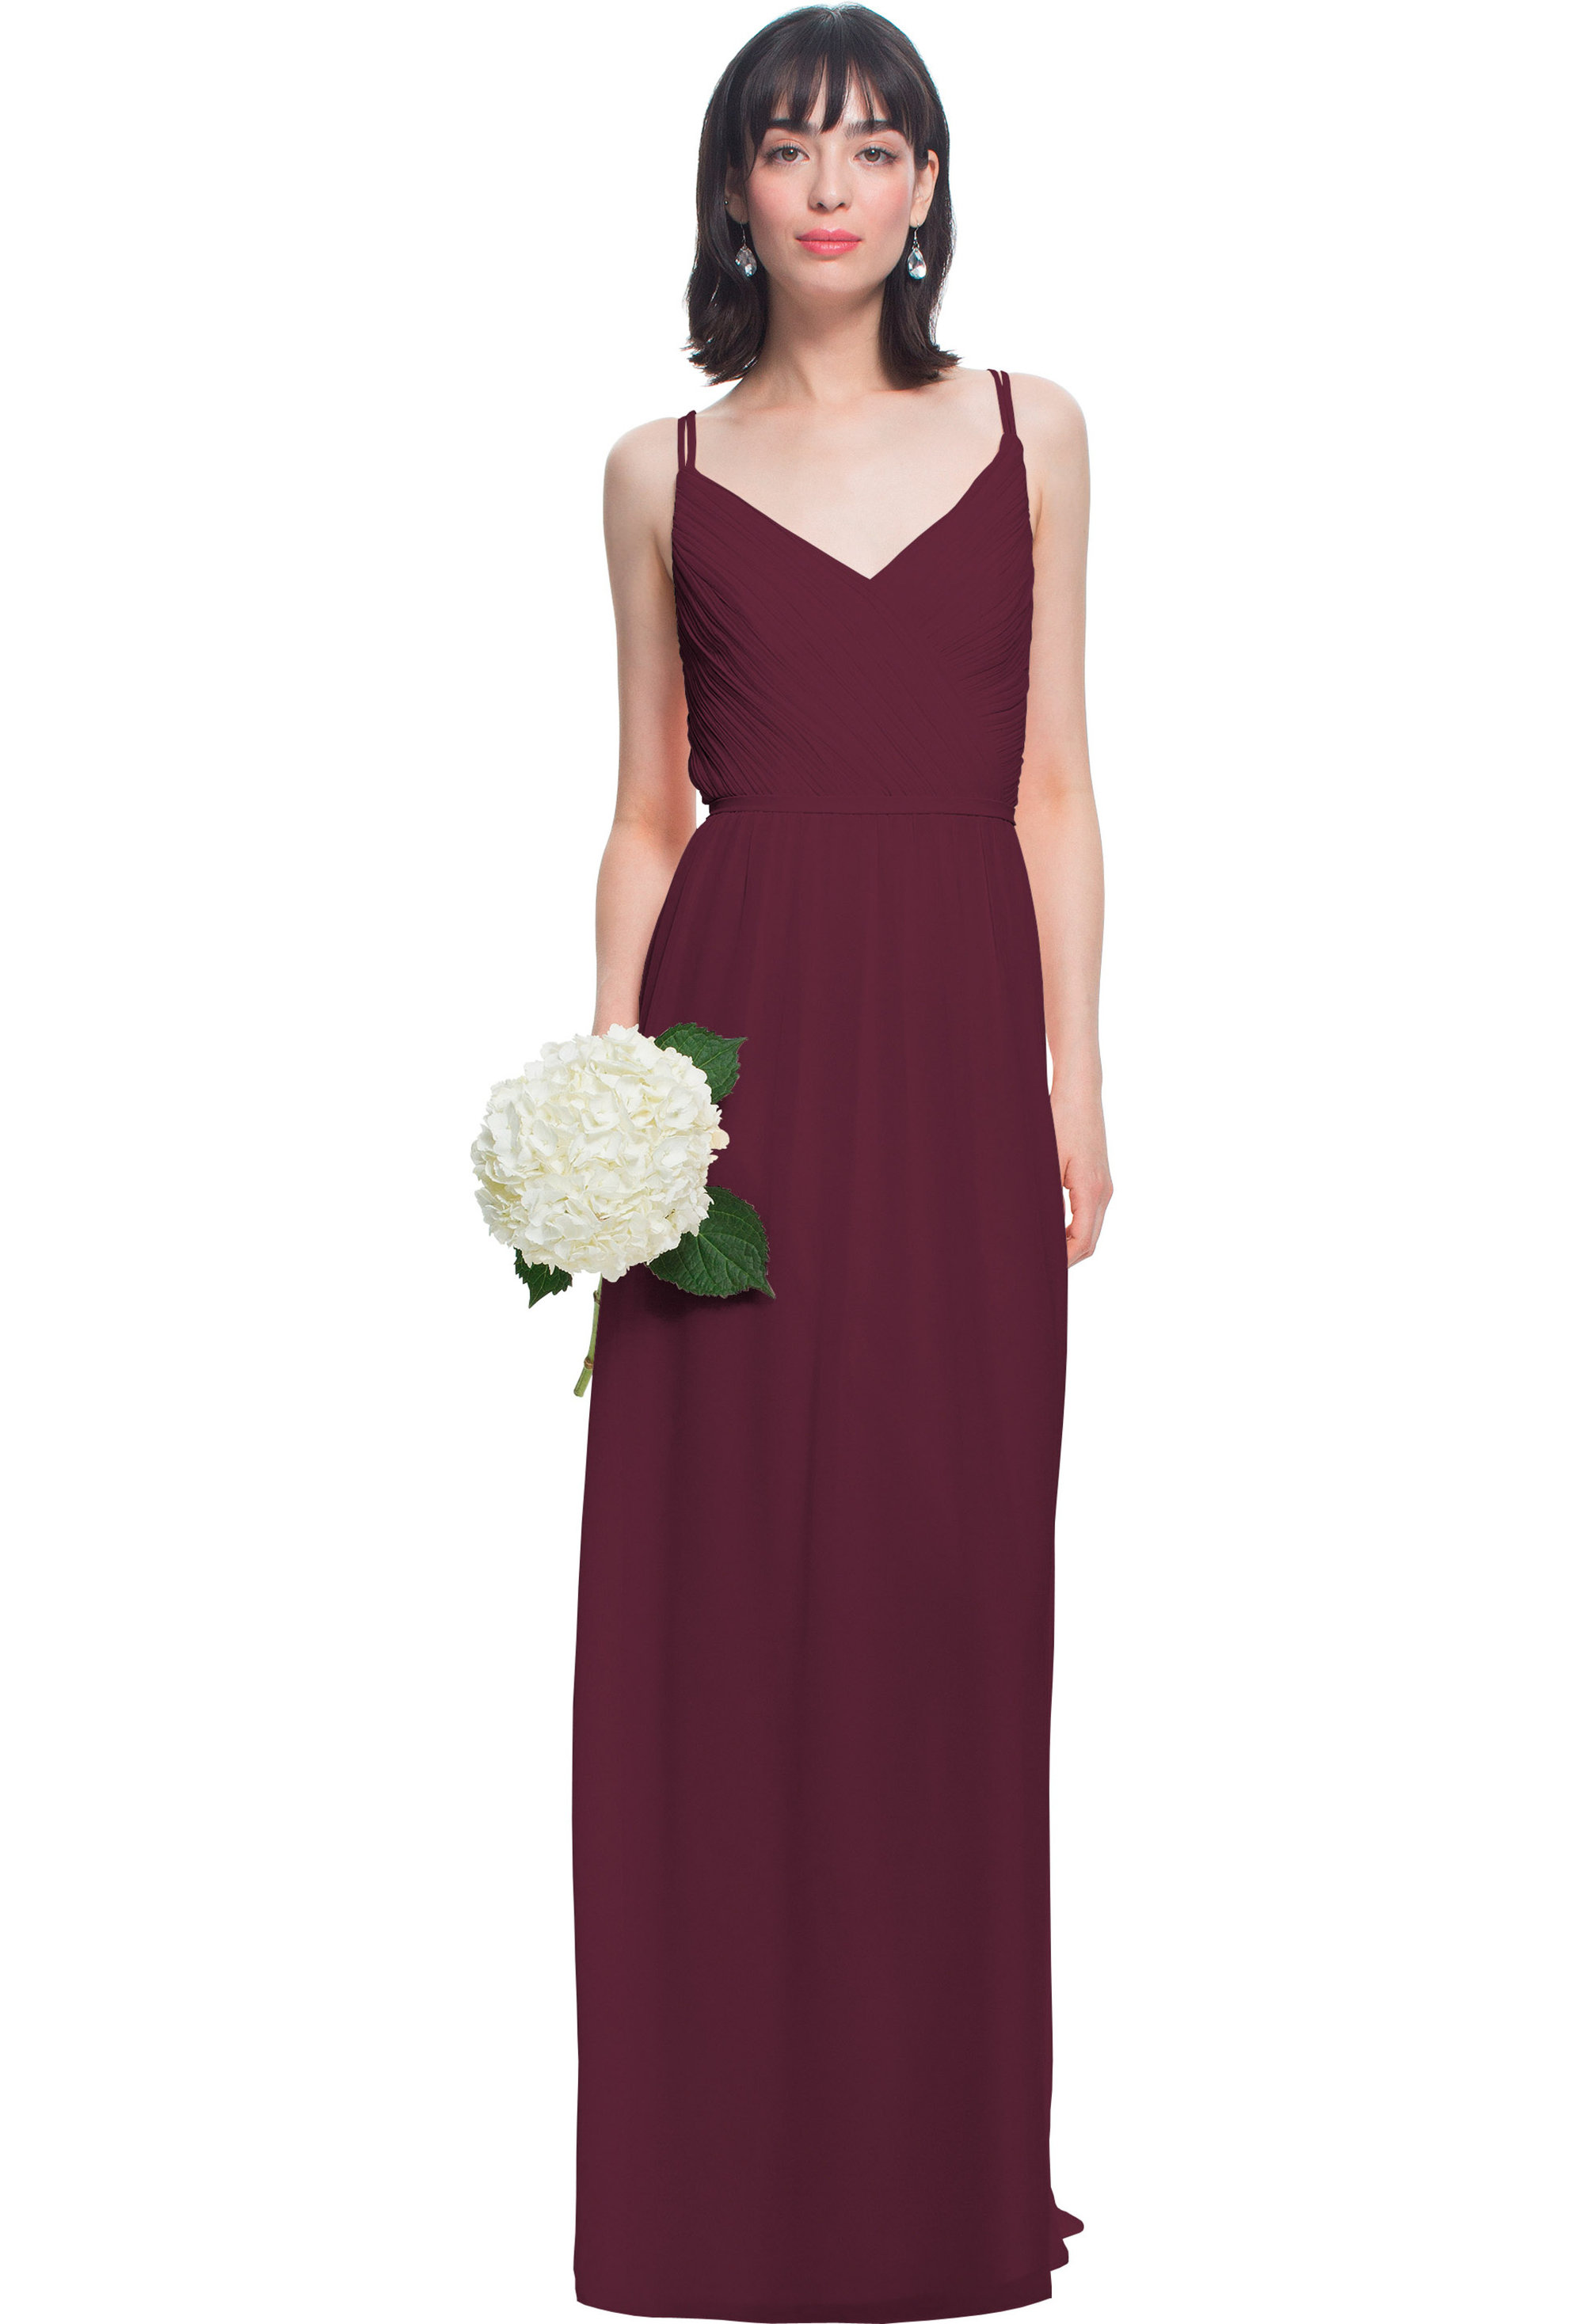 Bill Levkoff WINE Chiffon V-neck A-line gown, $180.00 Front